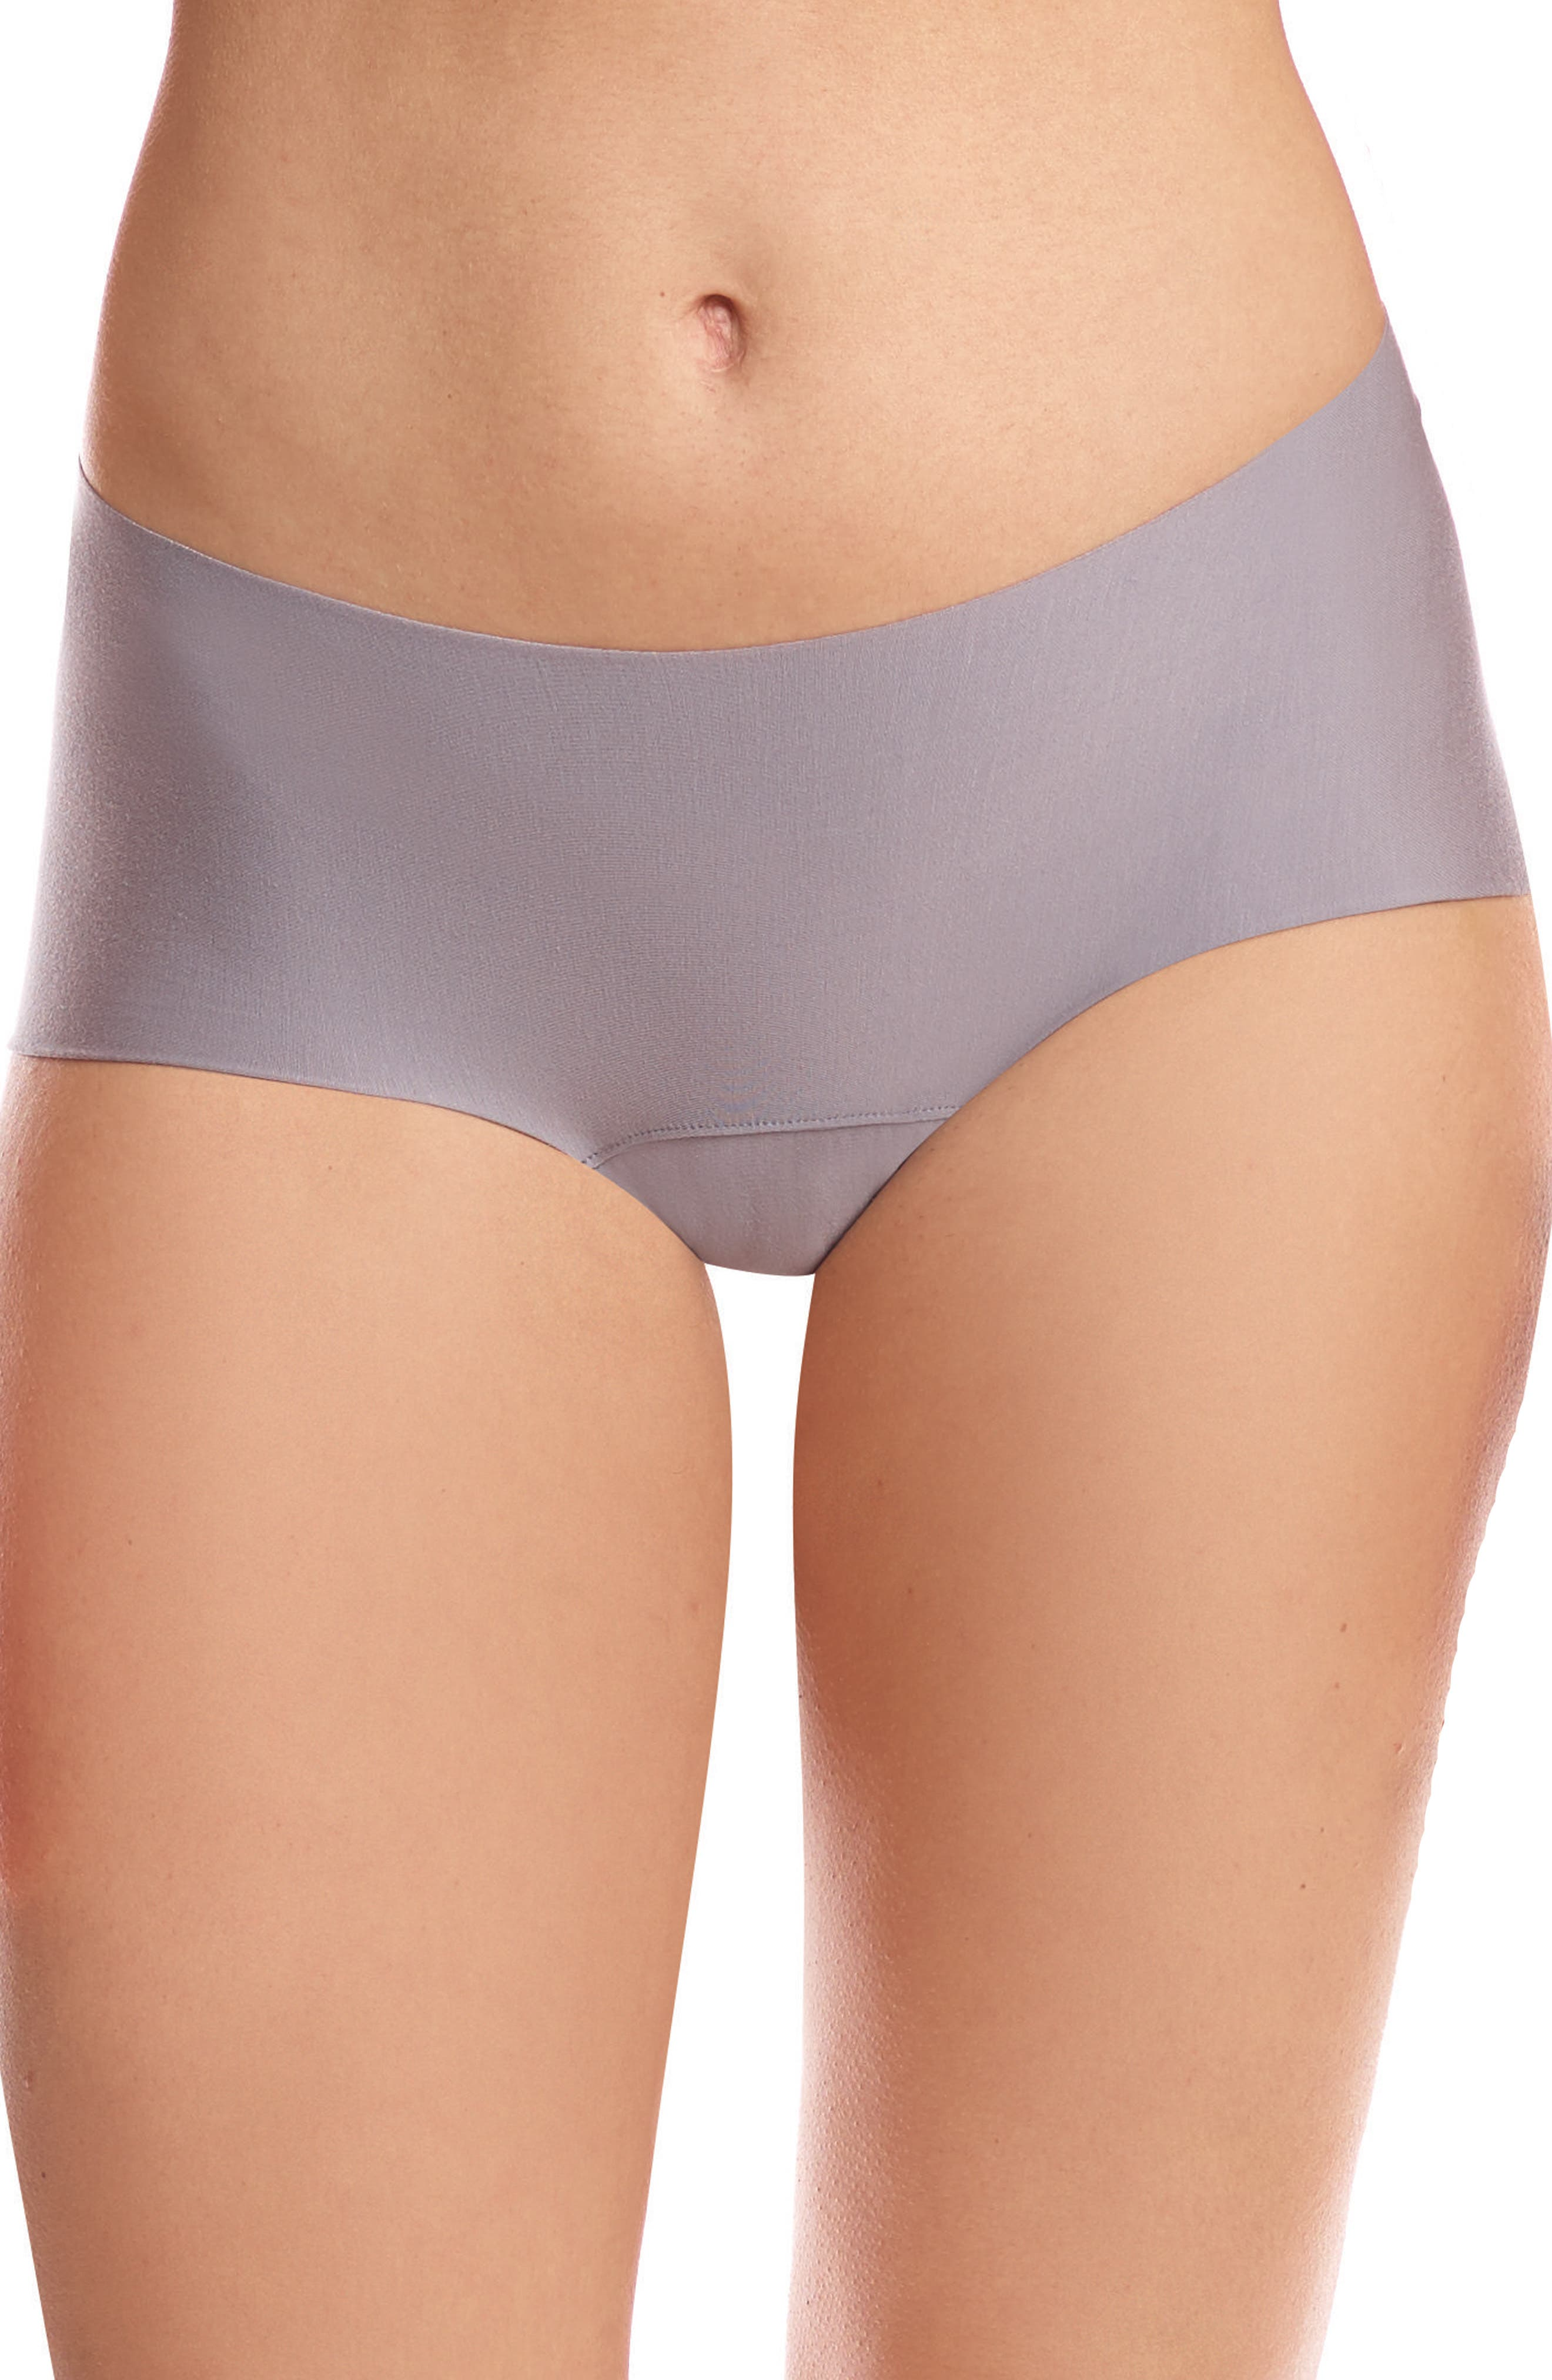 Butter Seamless Hipster Panties,                             Main thumbnail 1, color,                             Stone